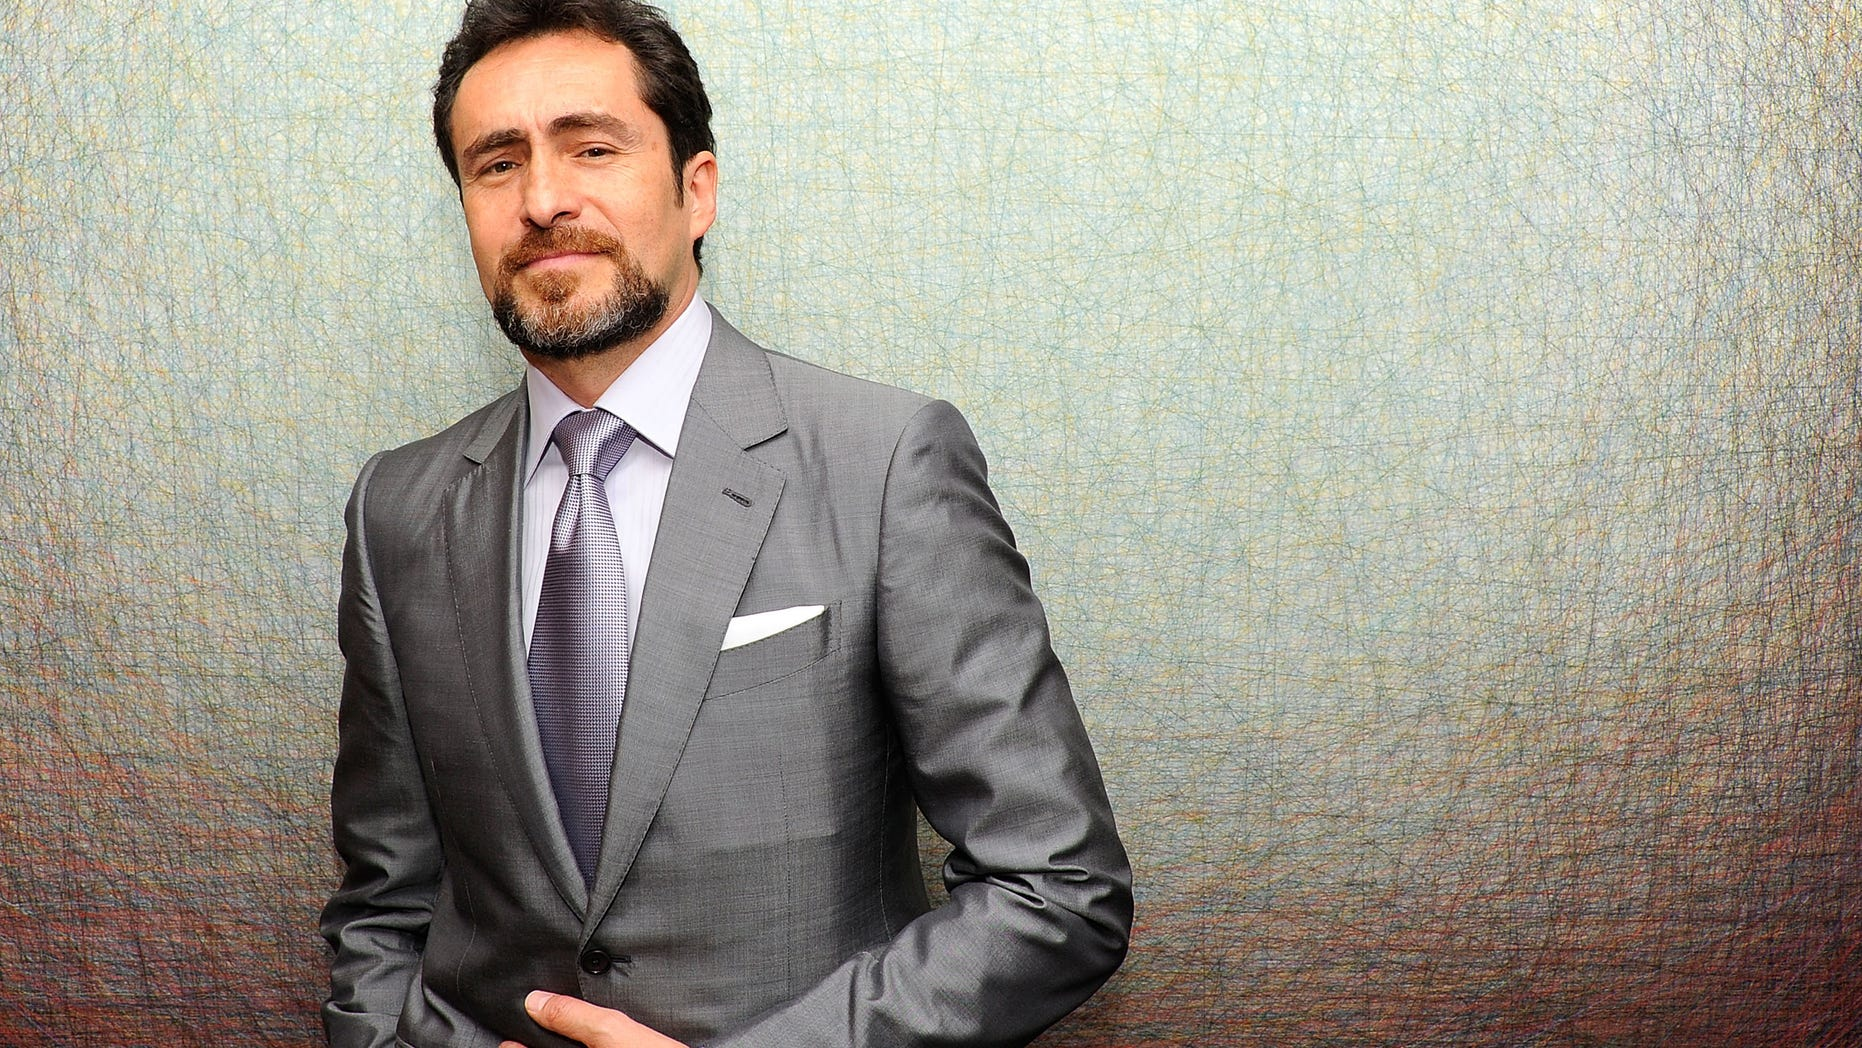 NEW YORK, NY - MAY 02:  Actor Demian Bichir attends the Ermenegildo Zegna NY Passion for Silk Event hosted by Gildo Zegna at Ermenegildo Zegna on May 2, 2012 in New York City.  (Photo by Andrew H. Walker/Getty Images for Ermenegildo Zegna)